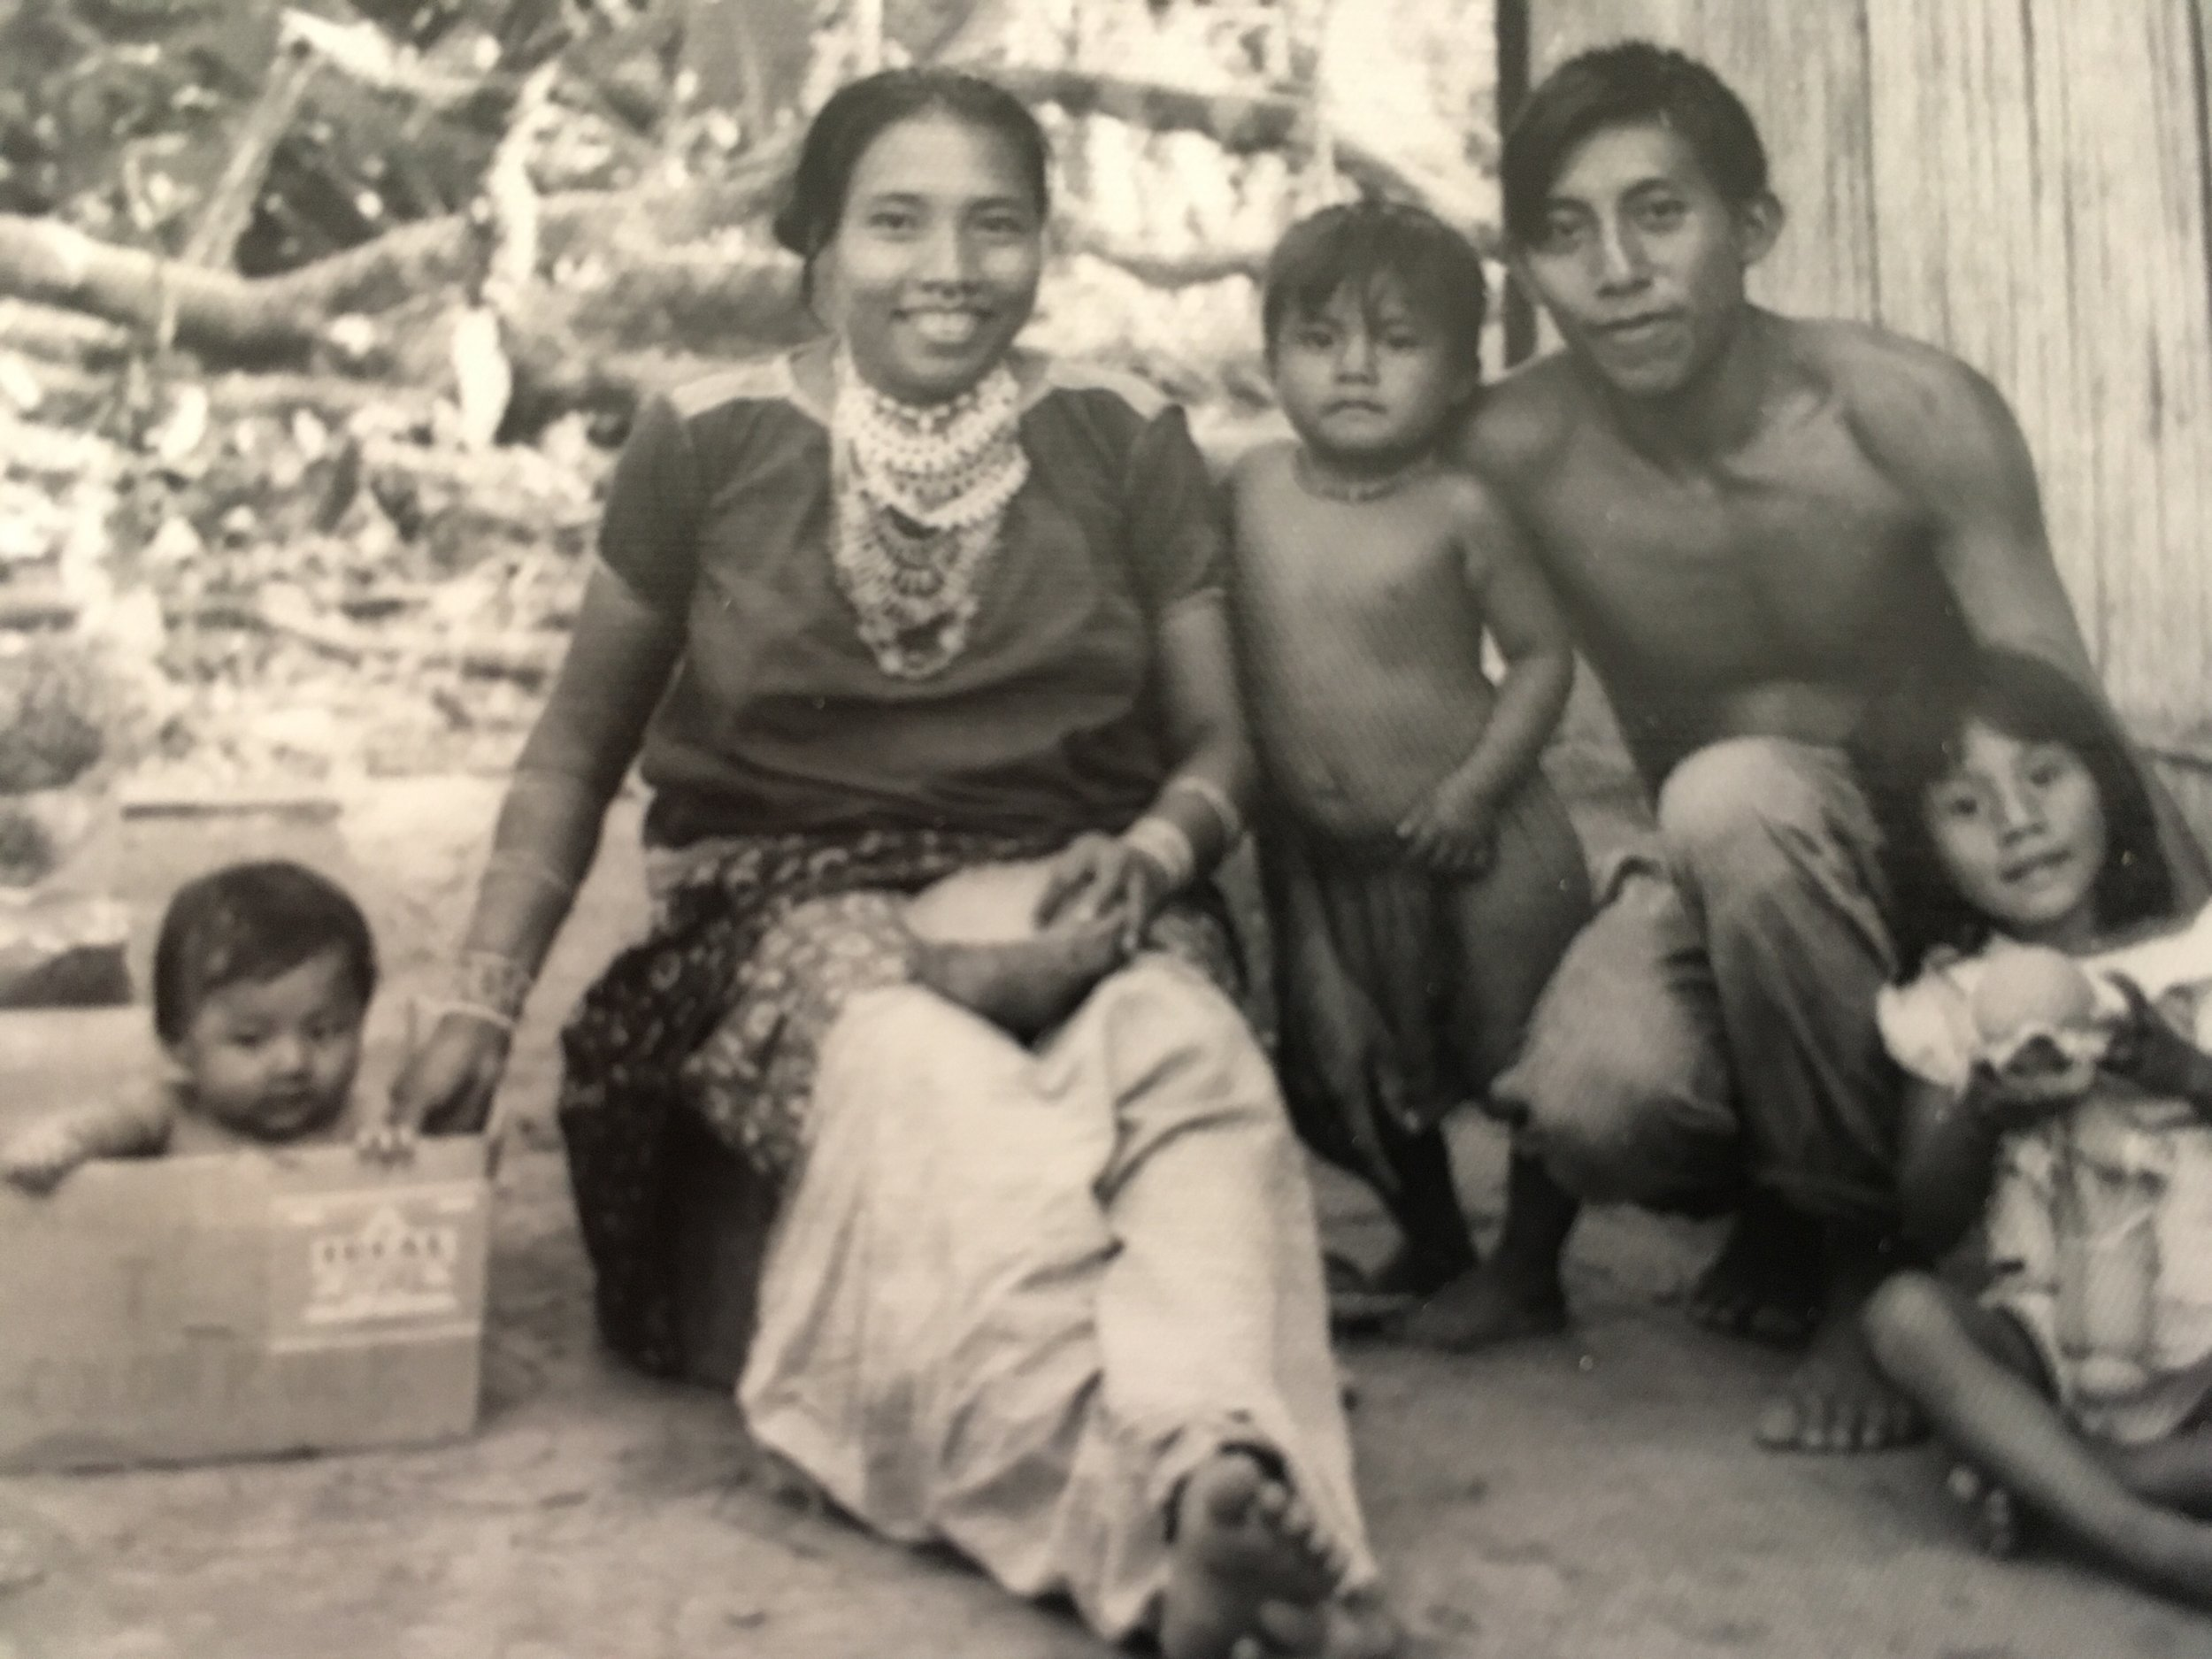 An image of my nearest Pucuro neighbors, Luis and Micheala Tovar